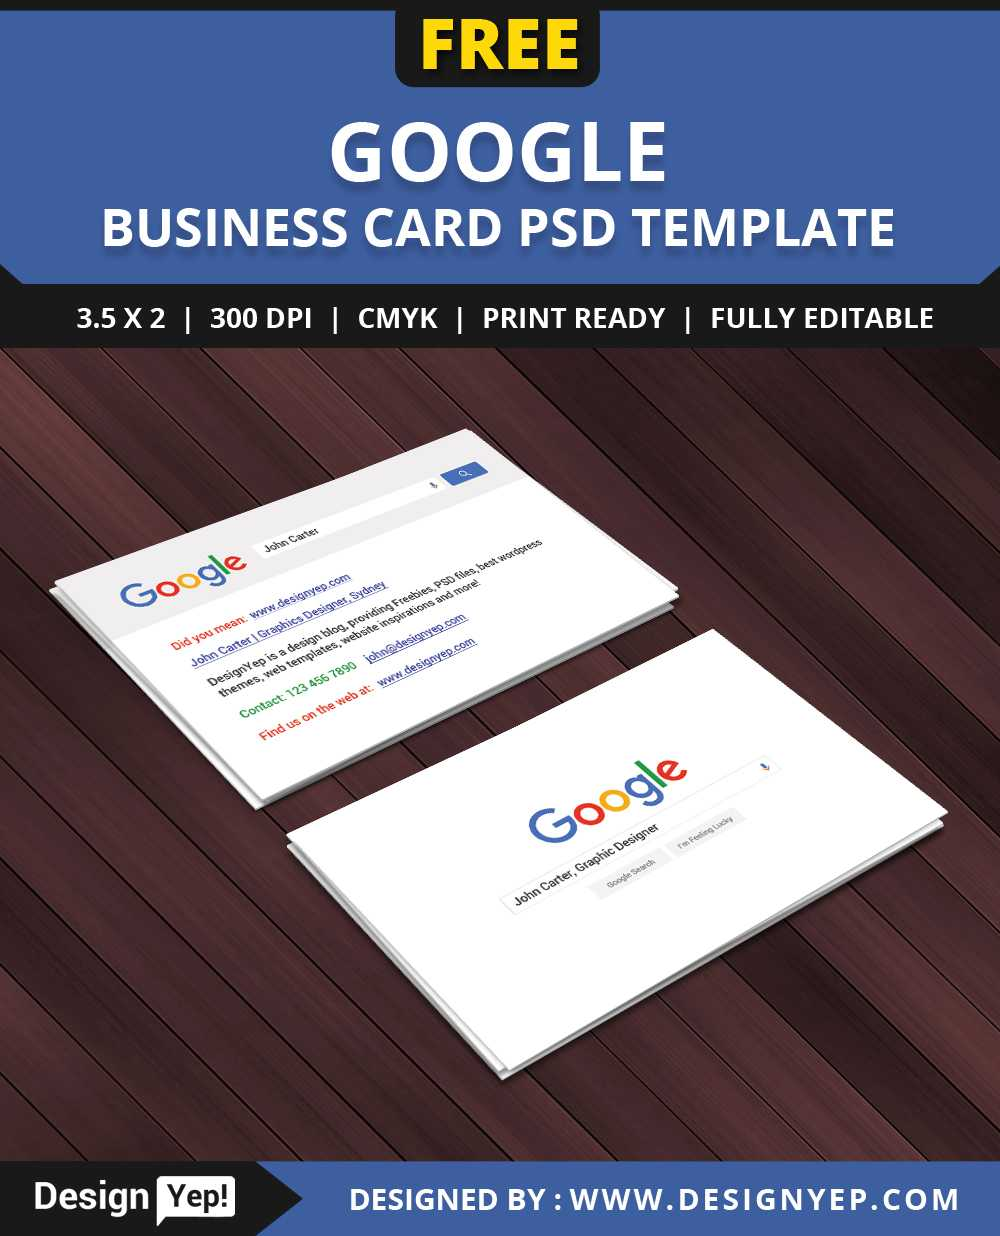 Free Google Interface Business Card Psd Template On Behance Intended For Google Search Business Card Template